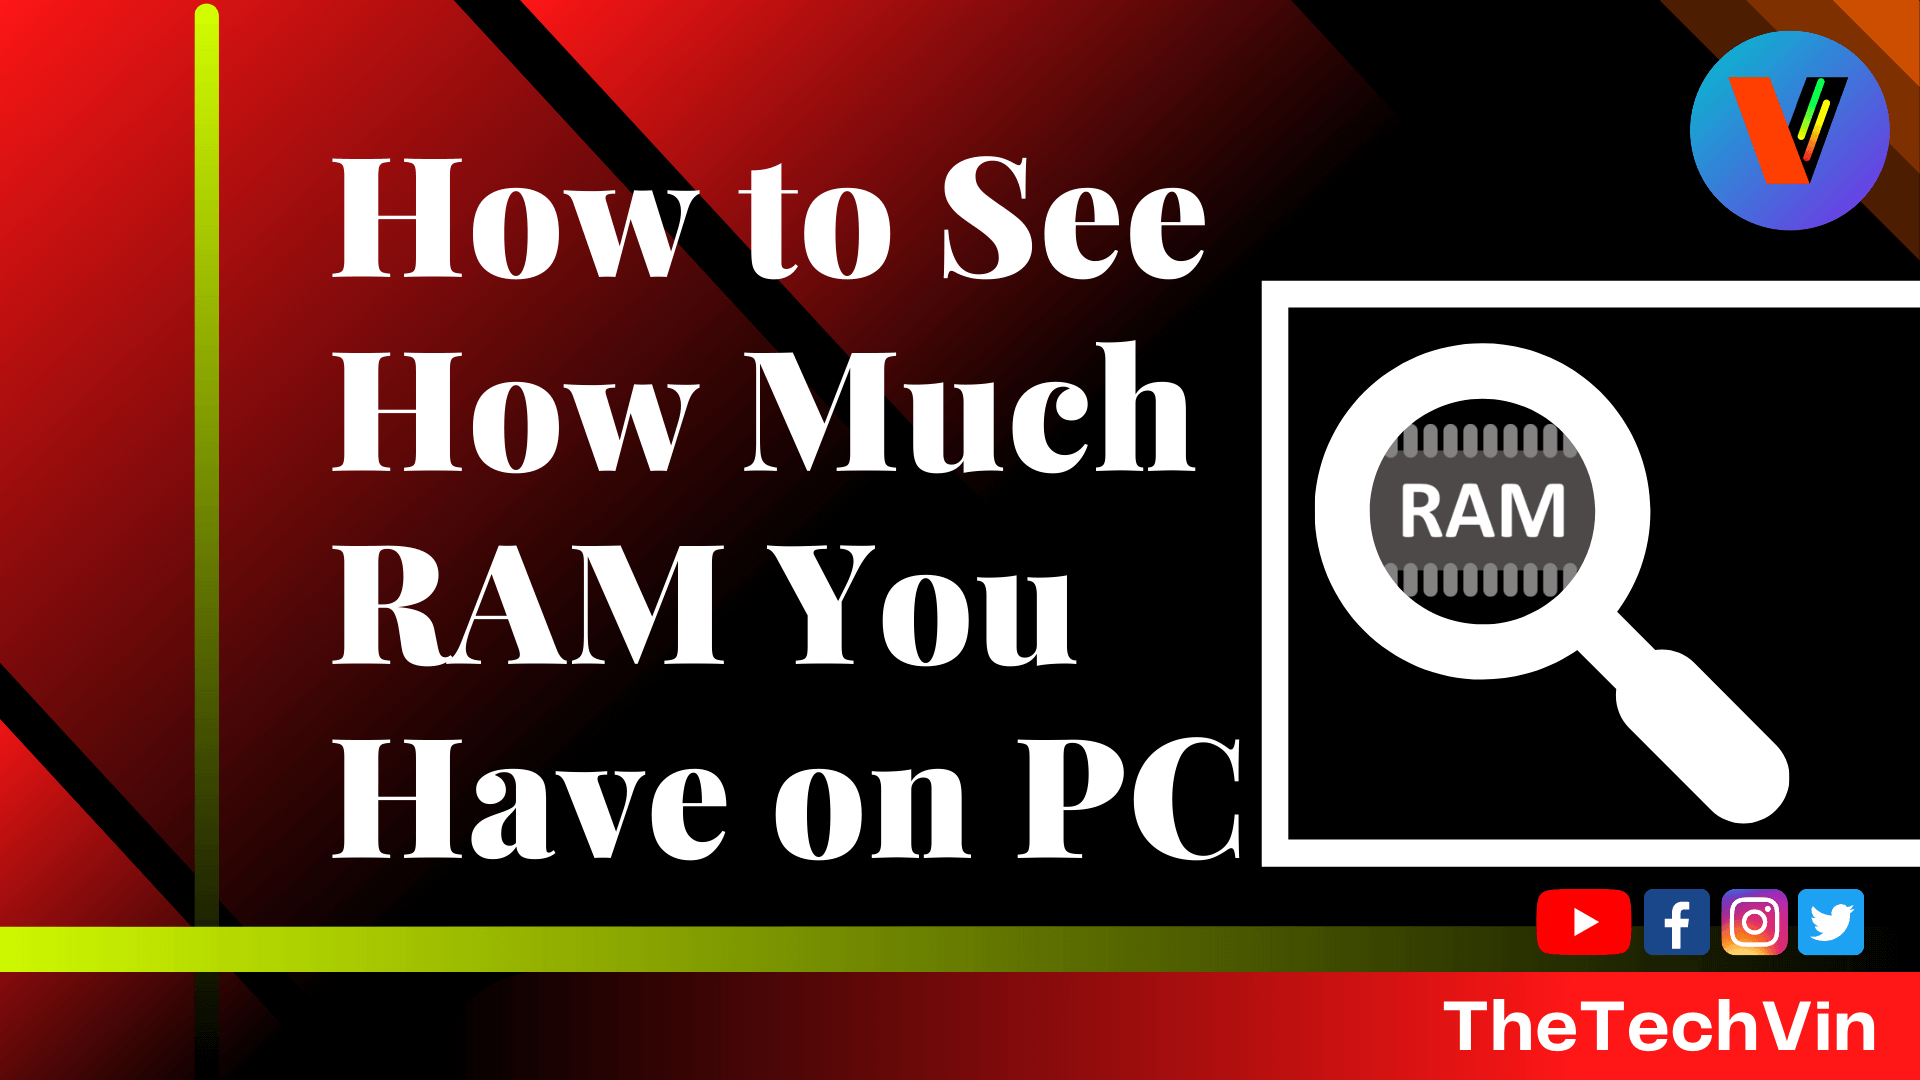 How to see how much RAM you have